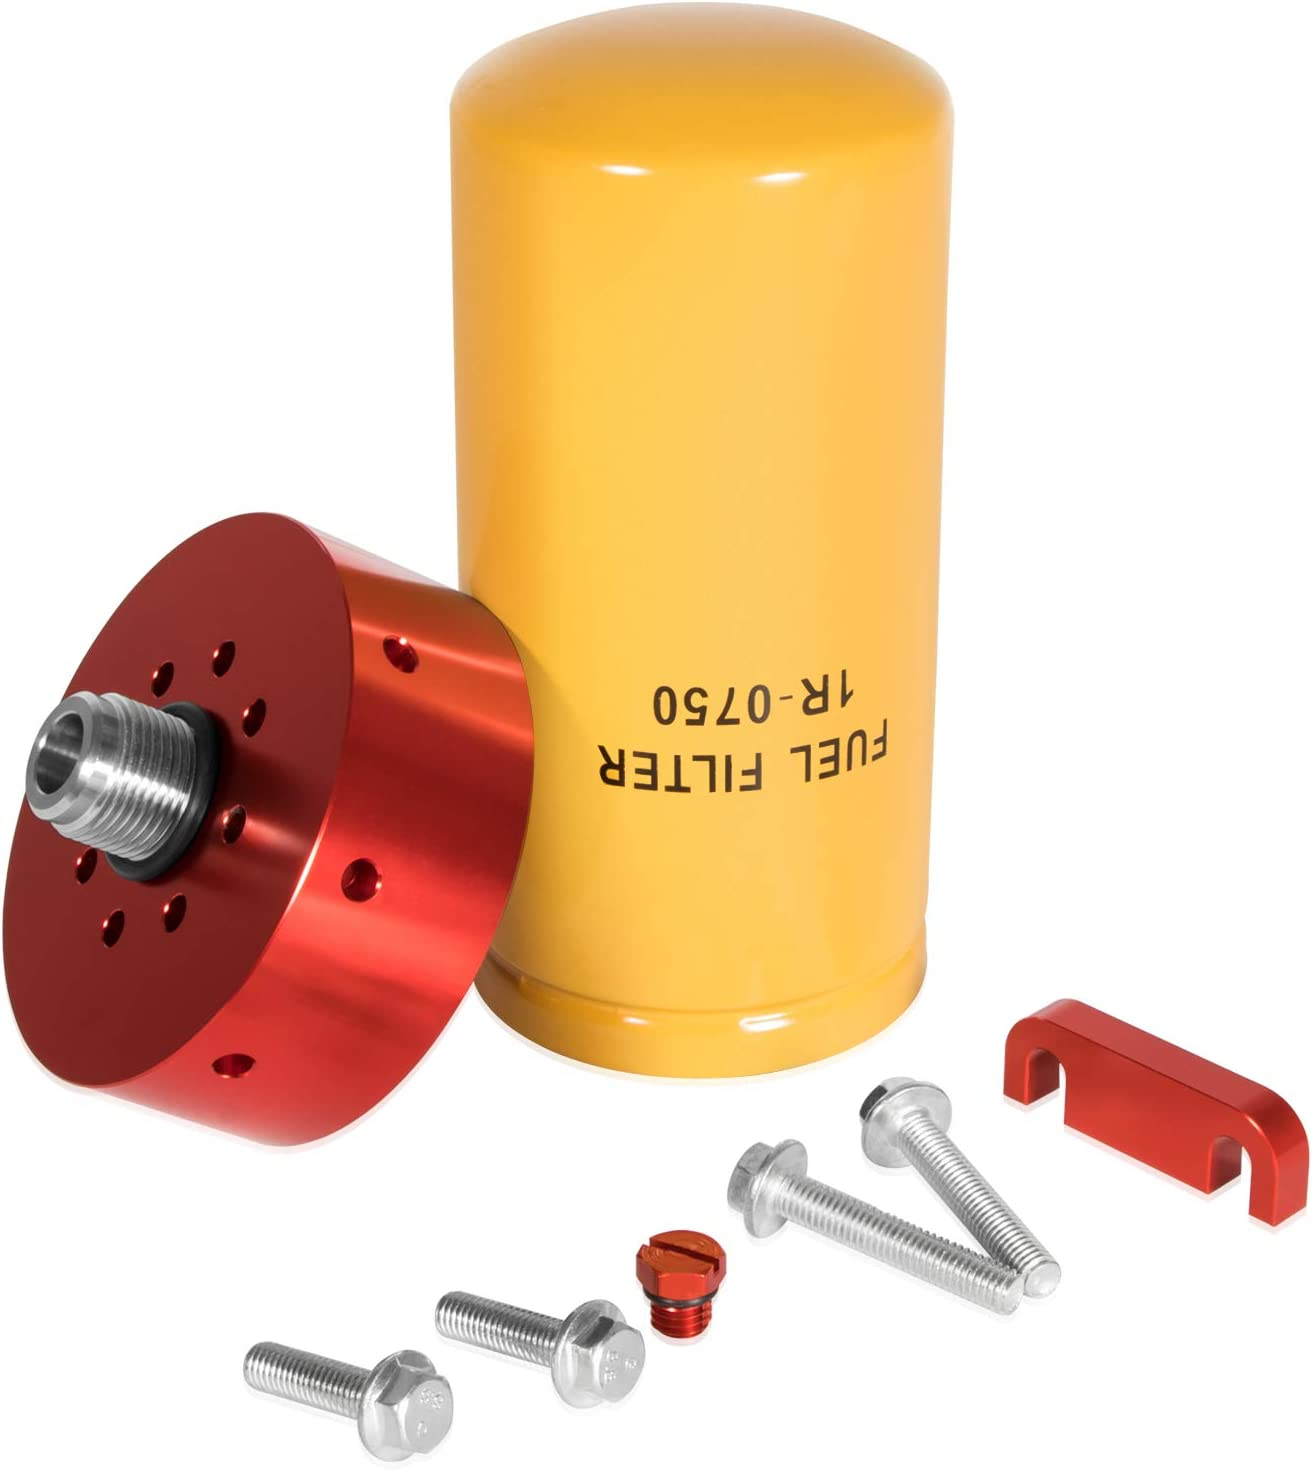 Filter Head Spacer /& 4 Bolts Increased Filtration for 2001-2015 GM 6.6L Duramax 1R-0750 Fuel Filter with CAT Adapter Air Bleeder Screw